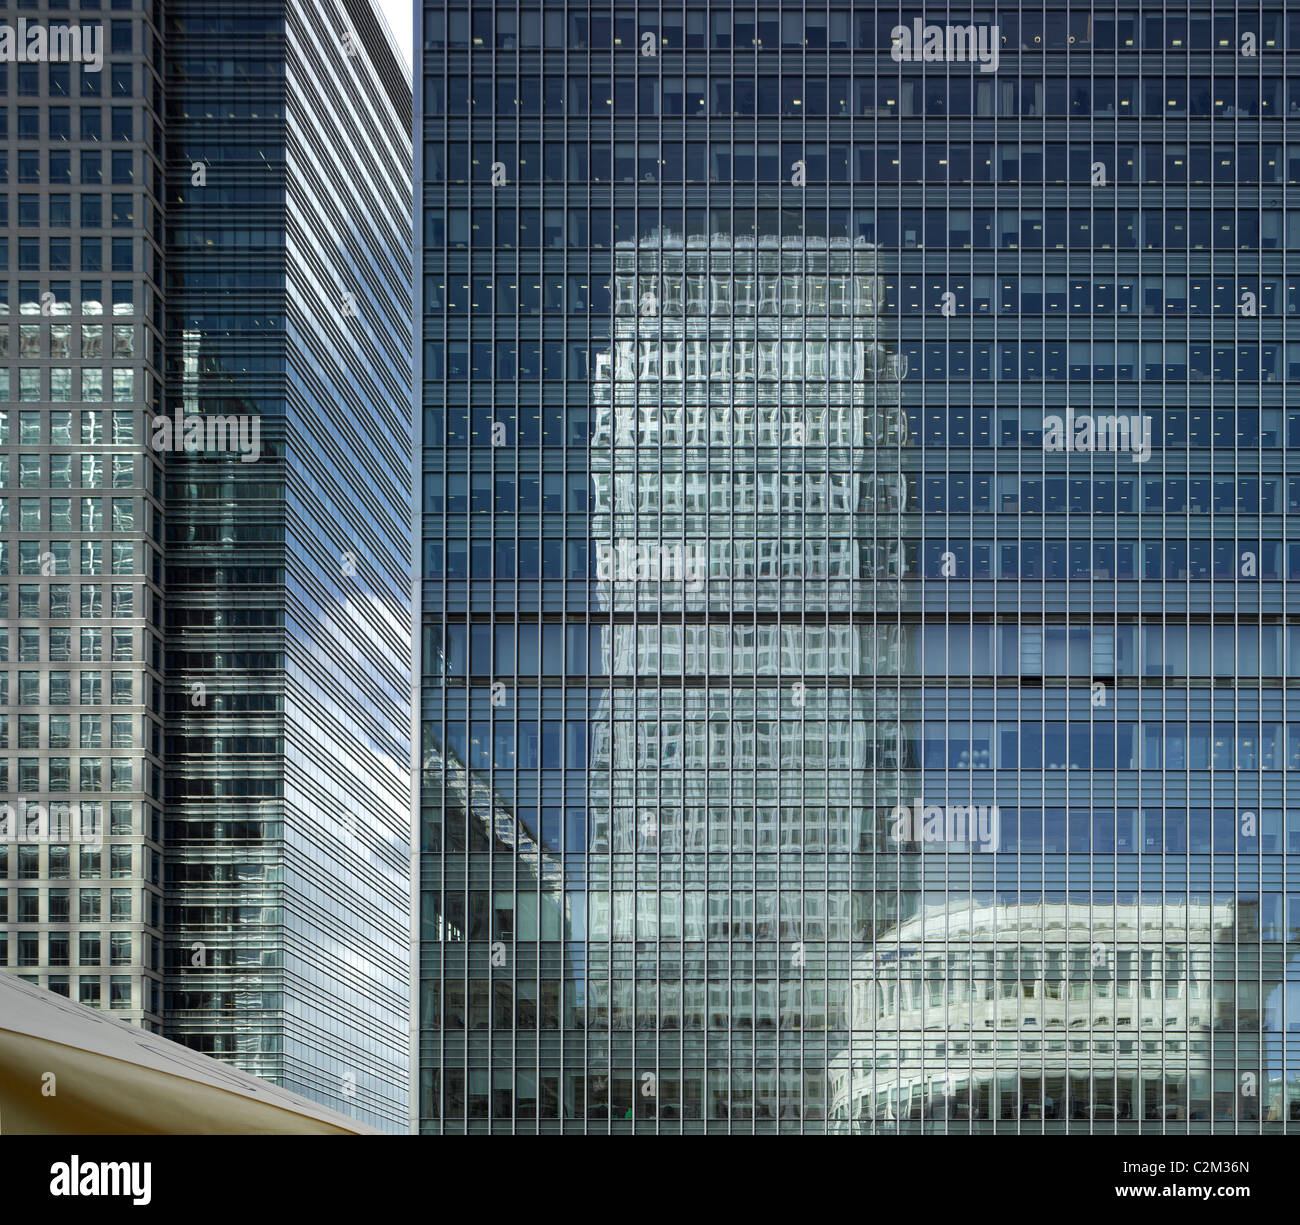 One Canada Square reflection, Canary Wharf Tower, Docklands, London. - Stock Image